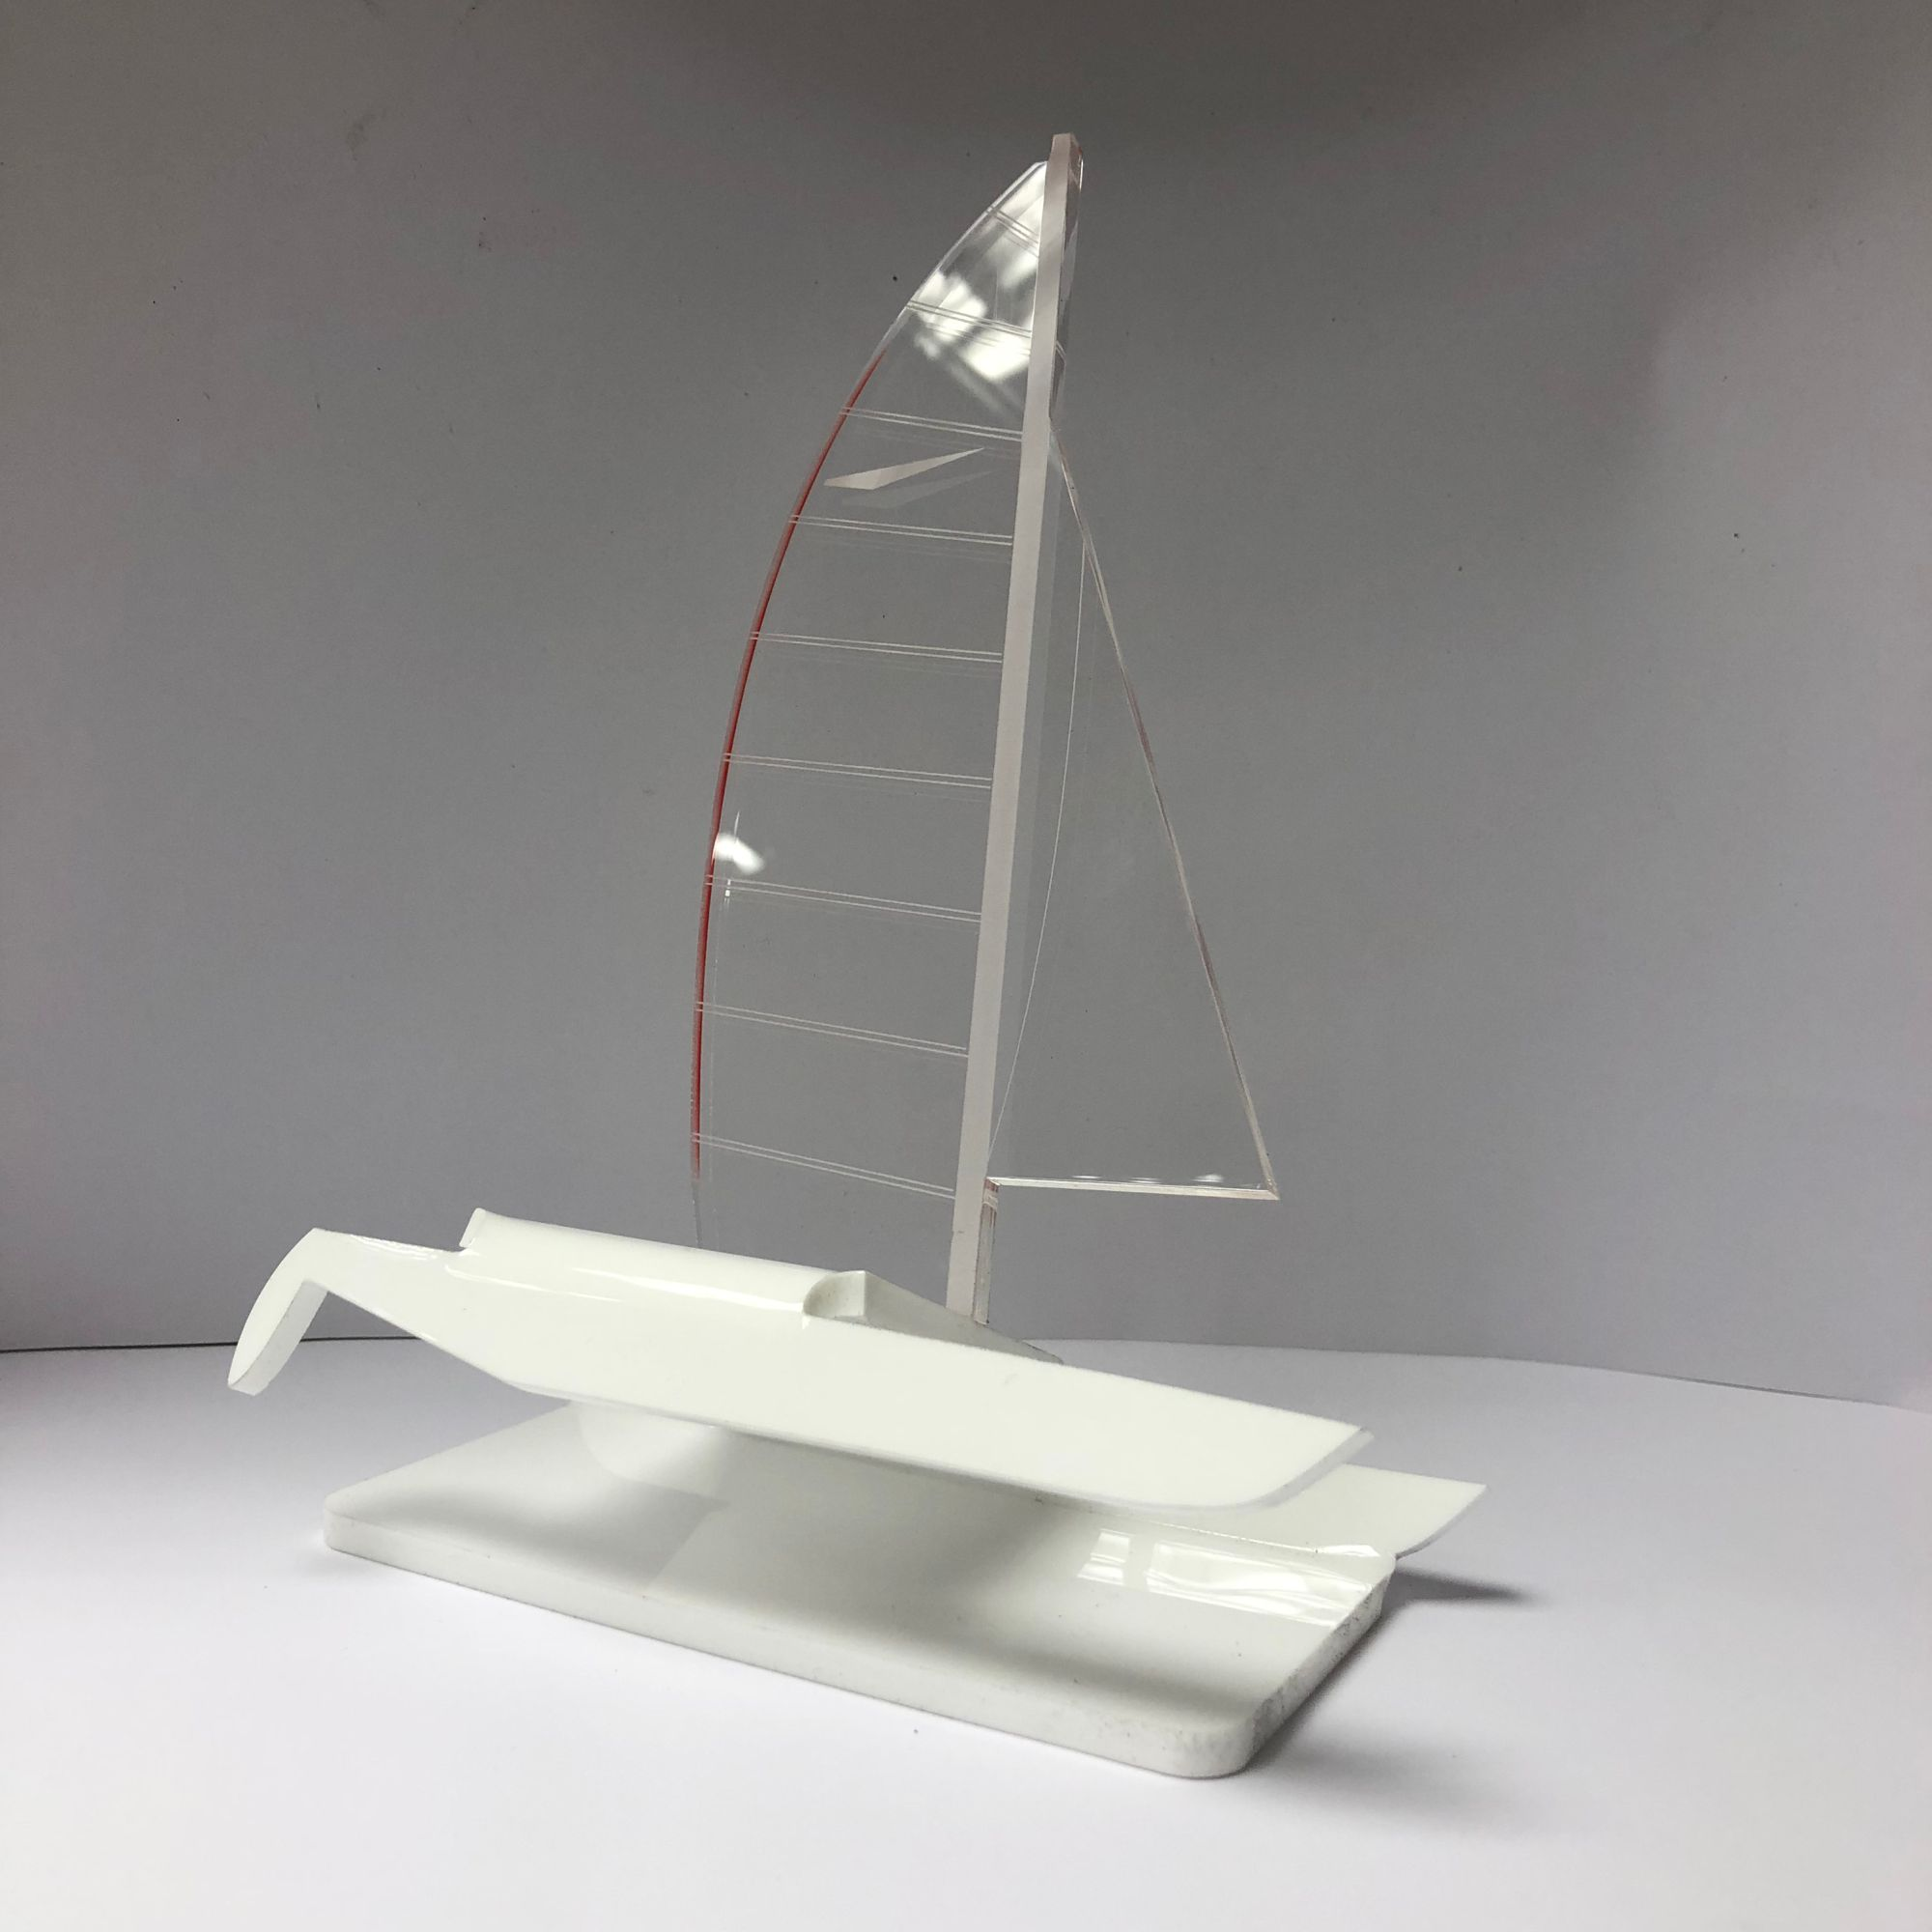 Dart_Catamaran_Award_2.jpg